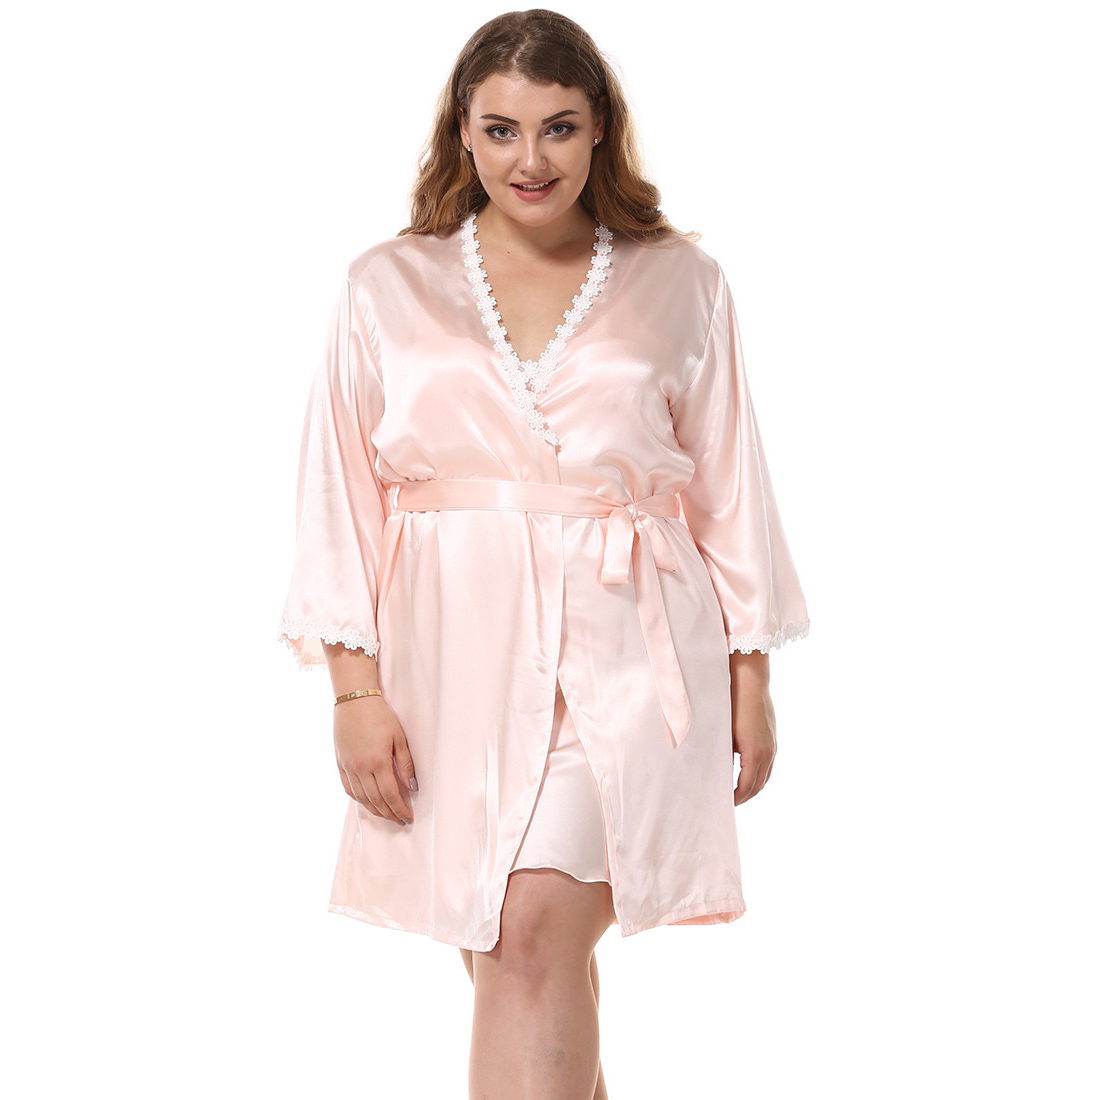 Elegant Women Spring Summer Robe Set Plus Size Xxxl Flower Trim Kimono Bathrobe Gown Suit Satin 2 Pcs Sleepwwear Female Nighty